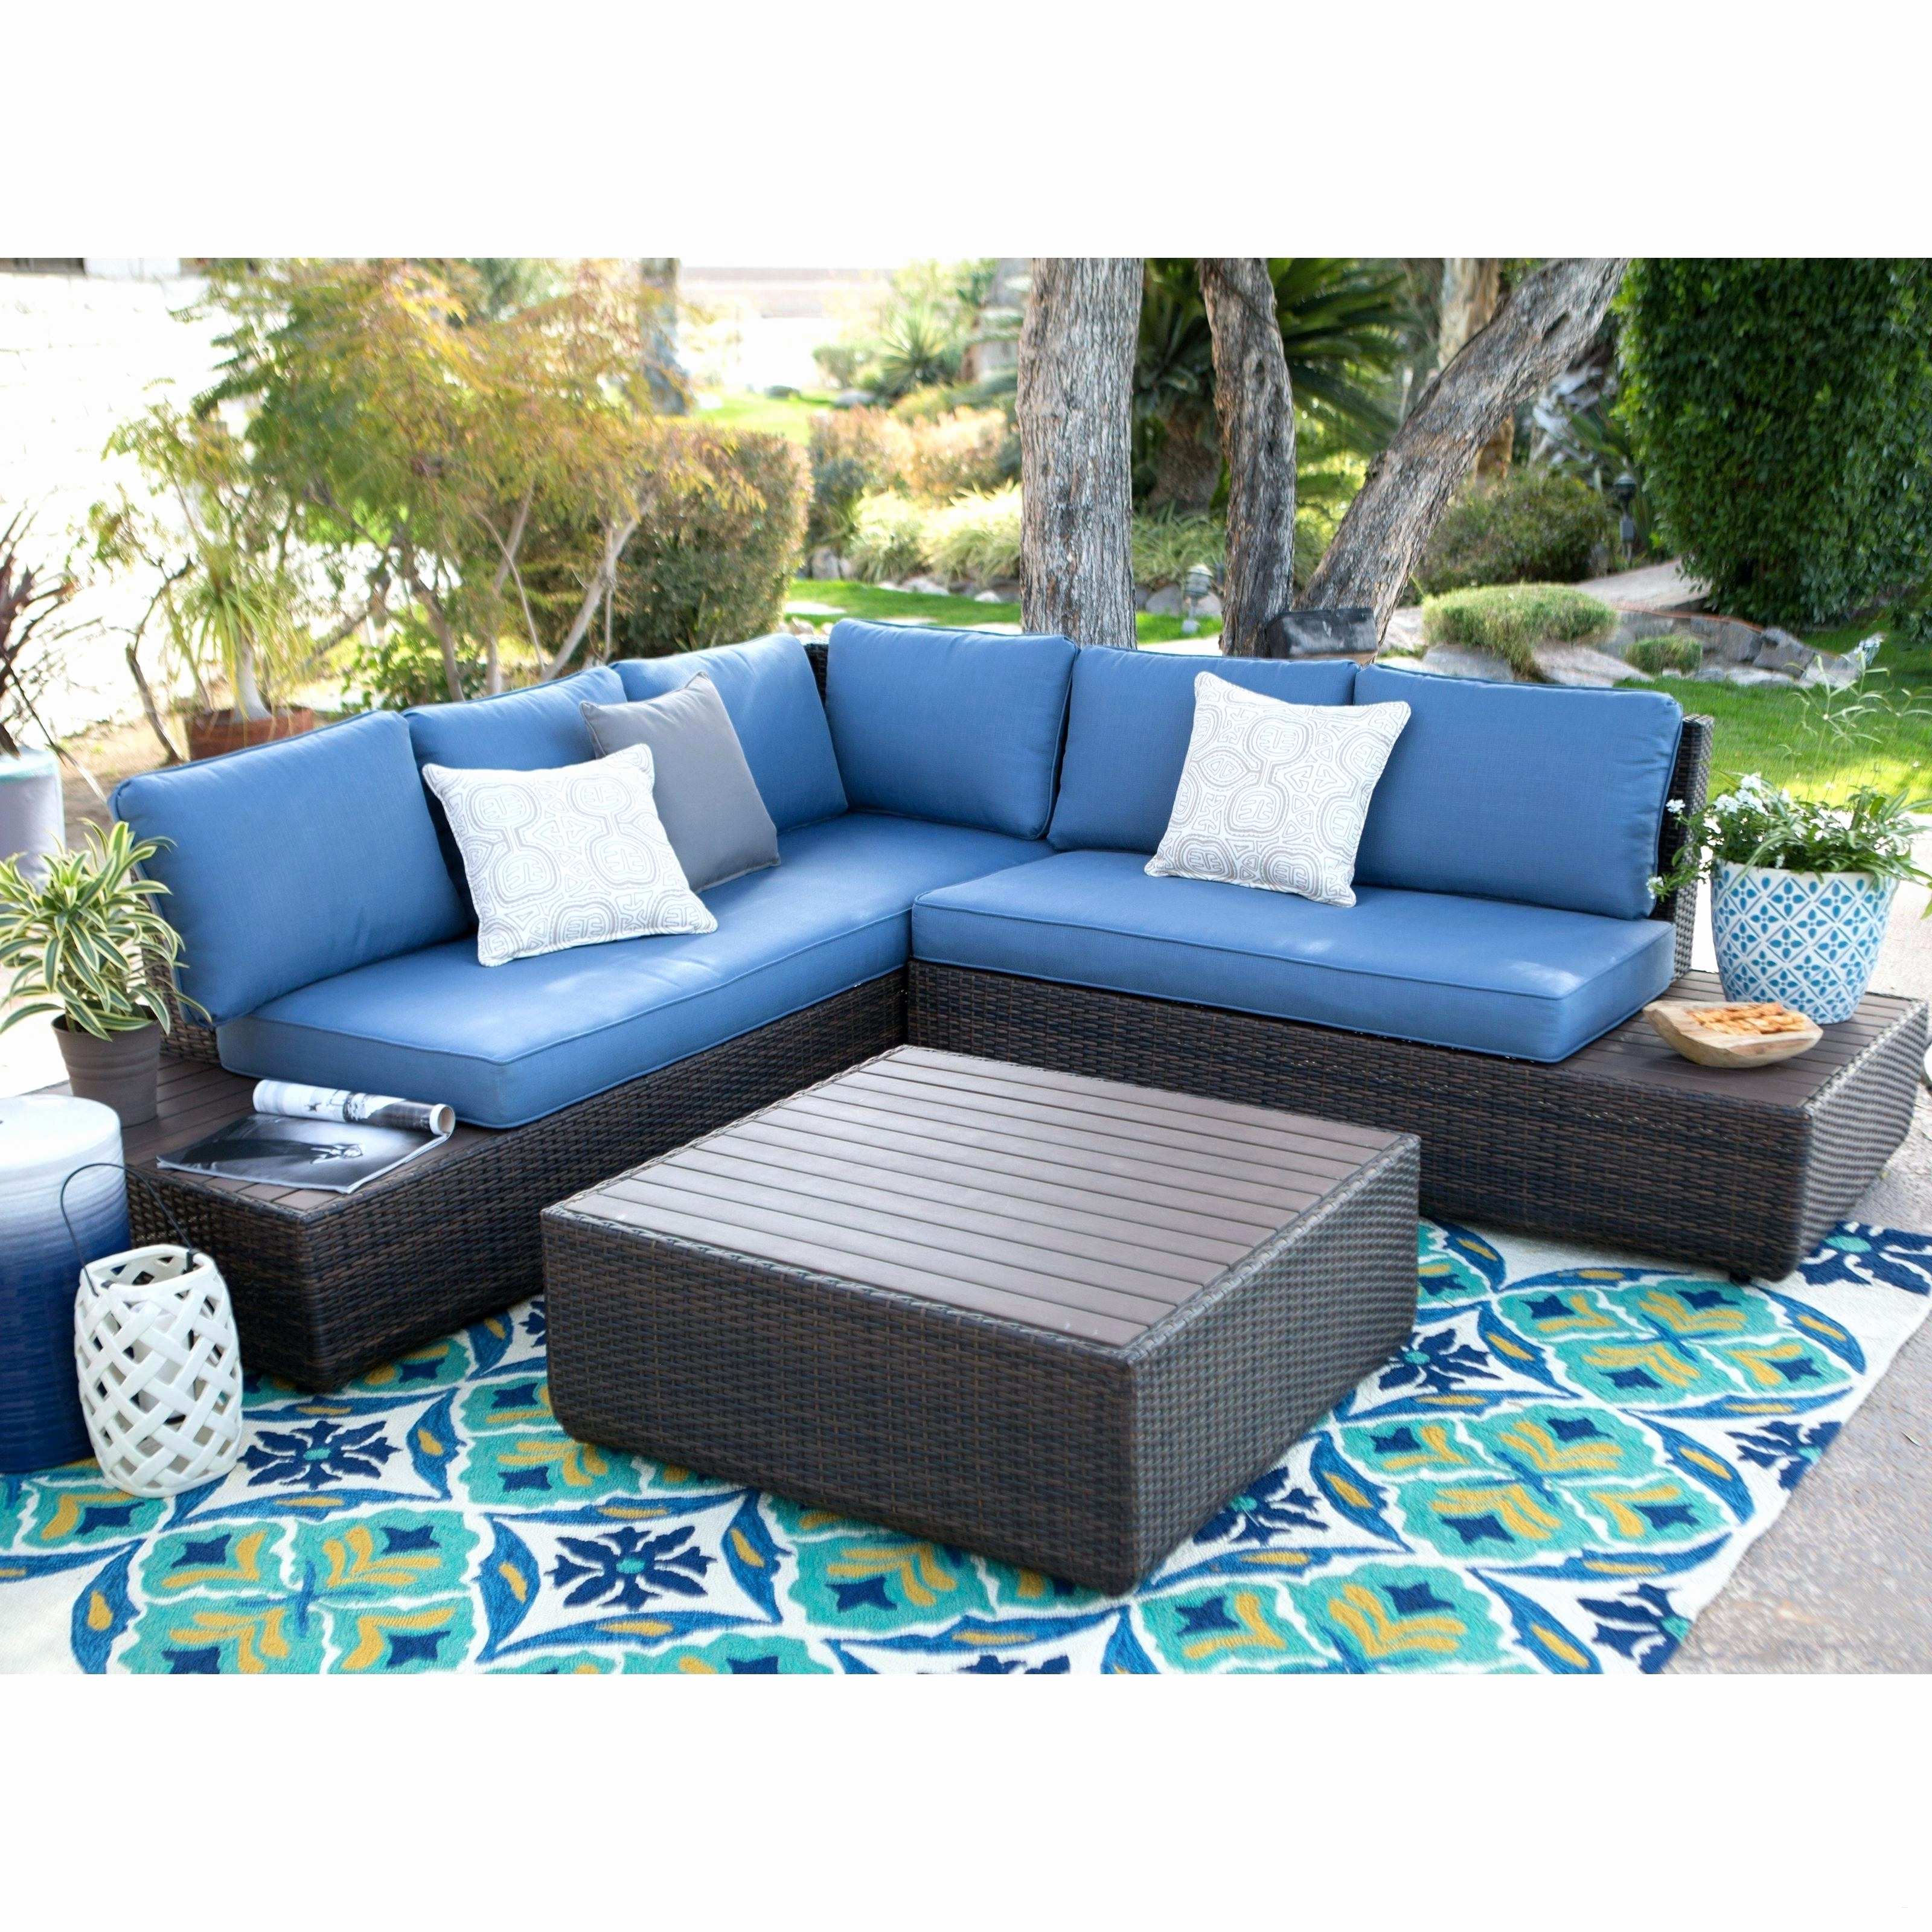 Target Outdoor Furniture Elegant 29 Lovely Conversation Sets Patio Pertaining To Well Known Target Patio Furniture Conversation Sets (View 13 of 20)